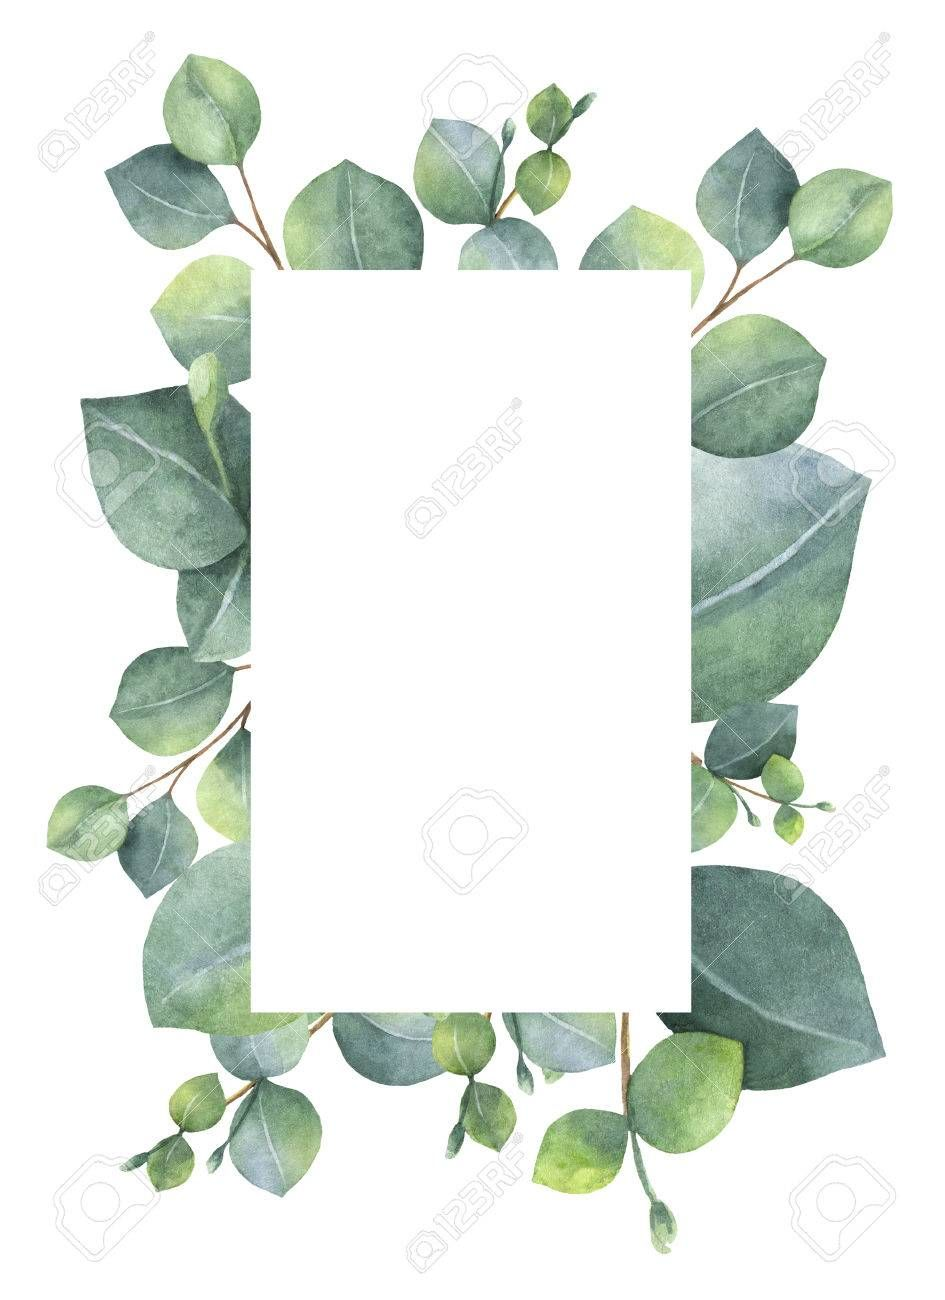 Stock Photo In 2020 Green Leaf Background Green Tattoos Green